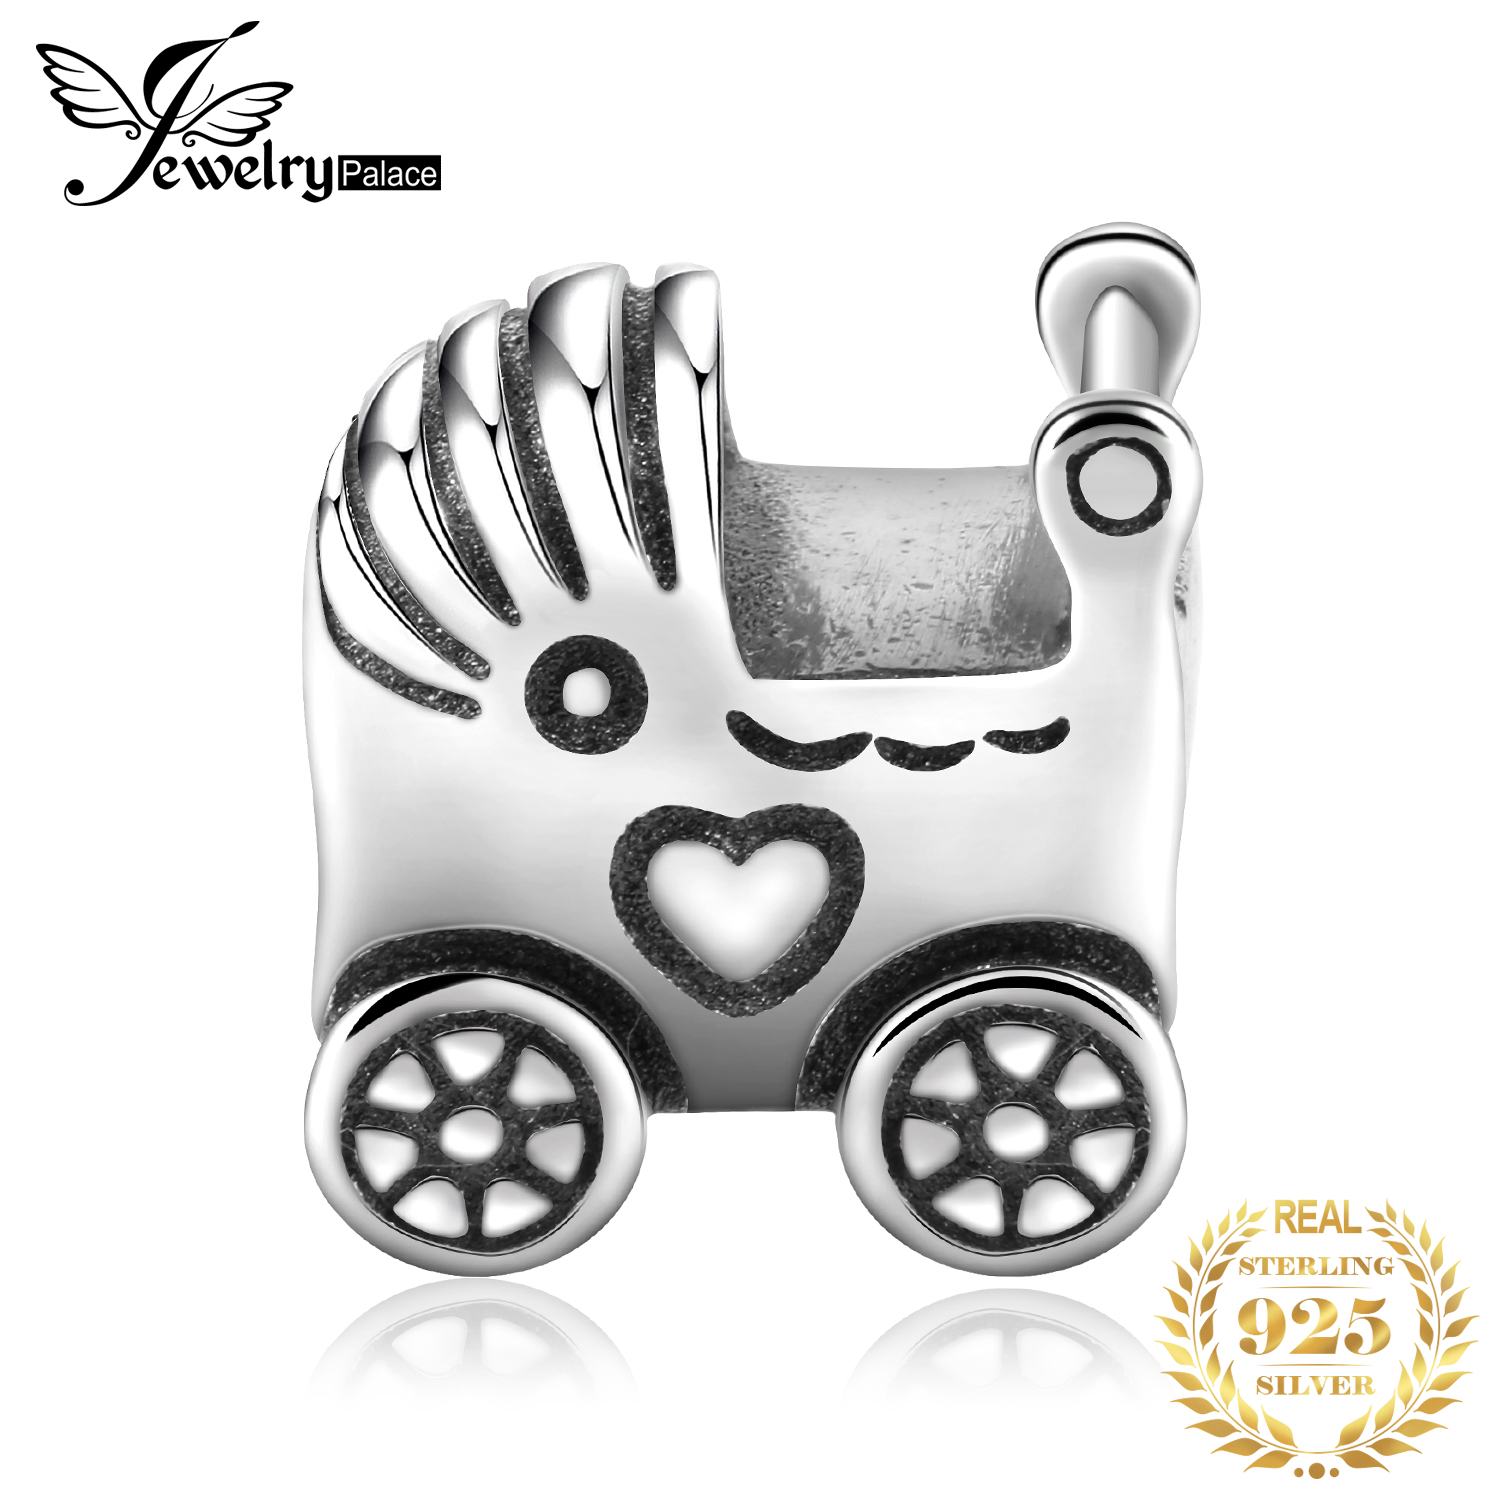 Jewelrypalace 925 Sterling Silver Baby Stroller Pram Charm Pendant New Hot Sale For Women As Beautiful Gifts(China)